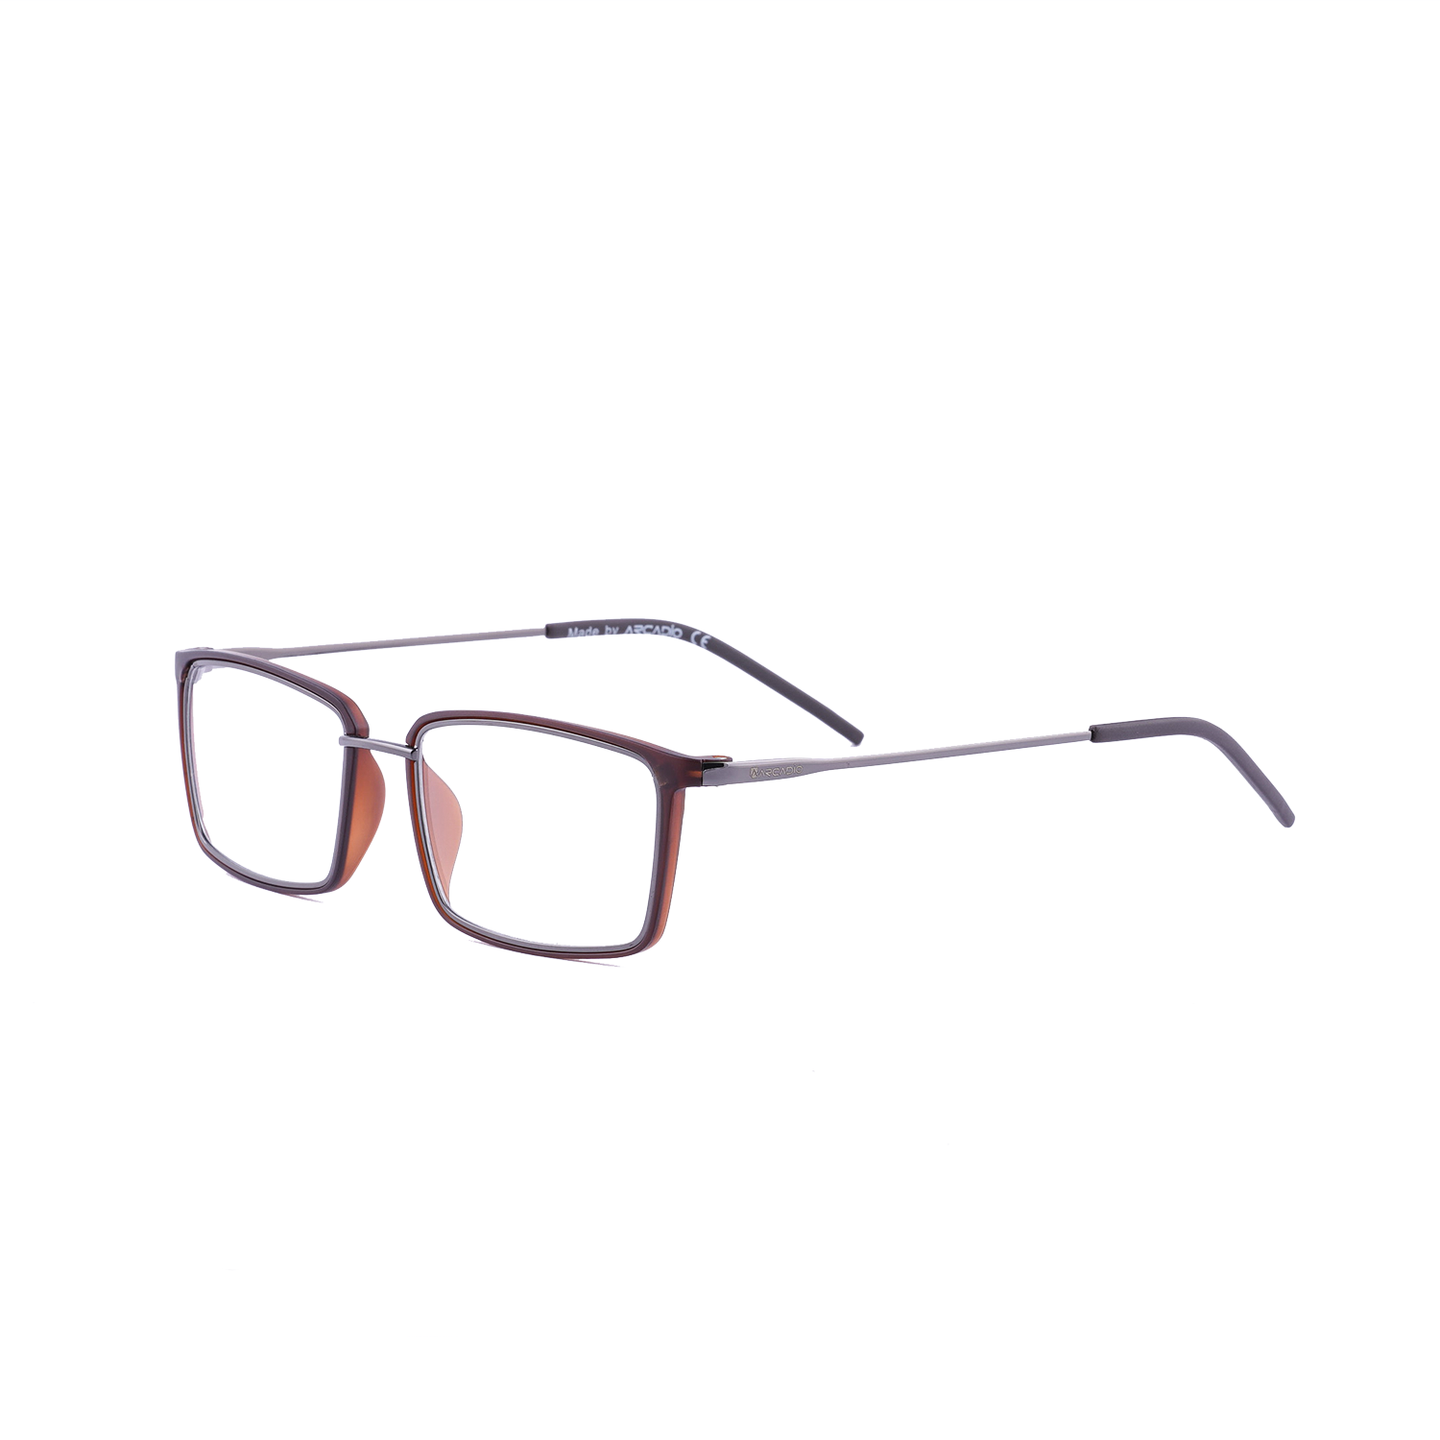 Flyer flex Double-Rim rectangle Frame - SF4419 - ARCADIO LIFESTYLE